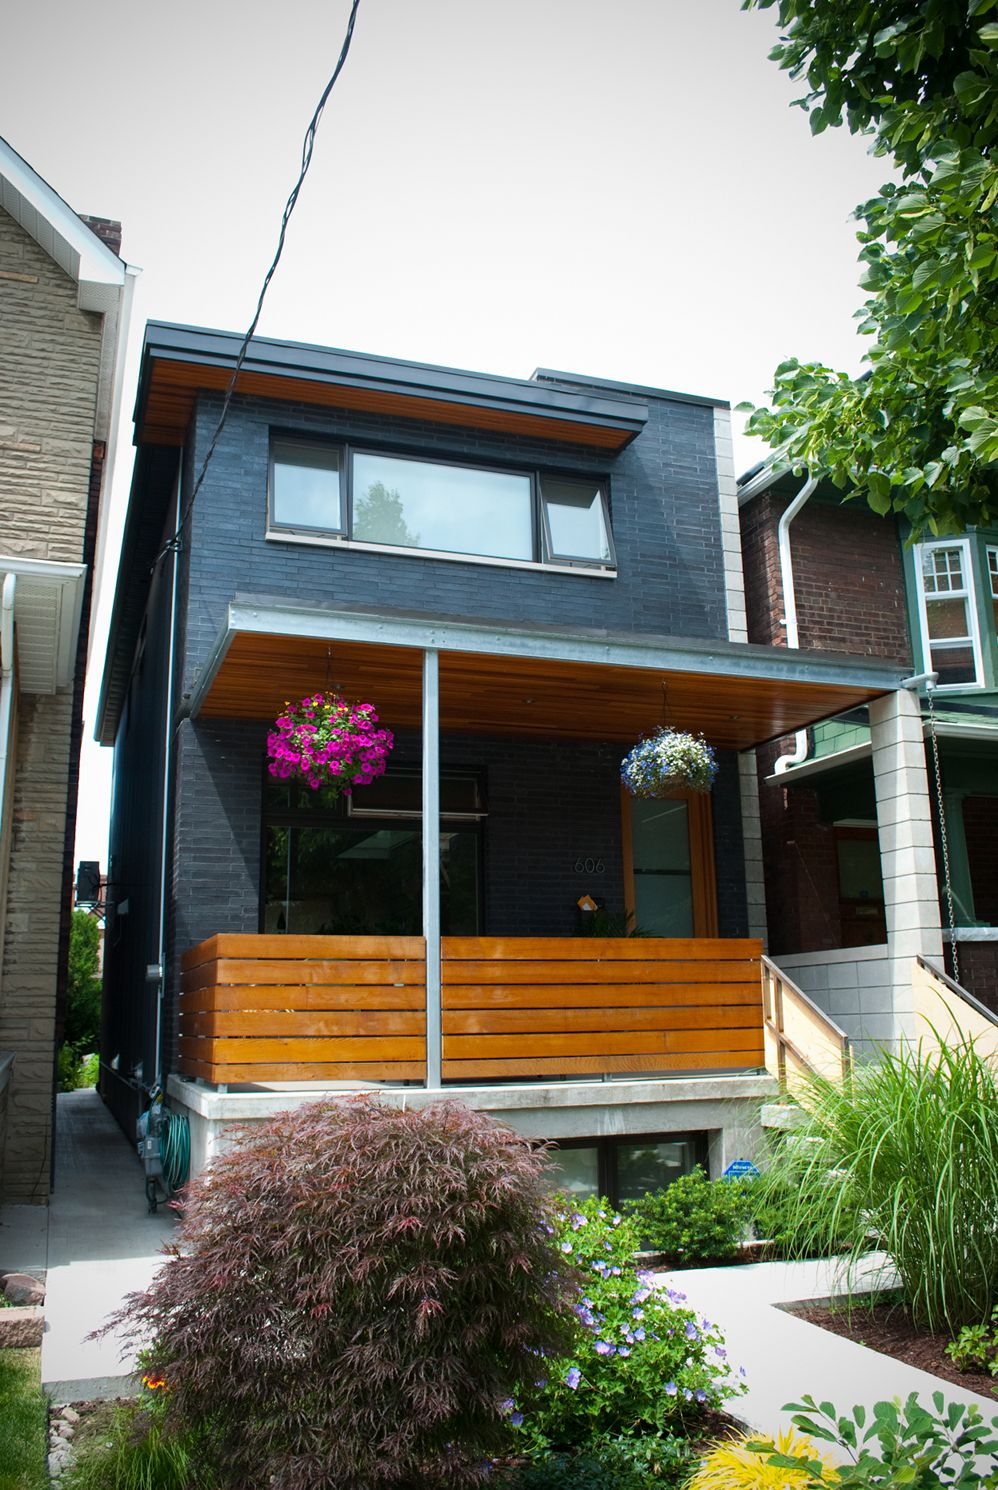 Small Front Porches Designs Front Porch Steps Porch Design: Modern Wood Front Porch. Love The Contrast Of Wood And The Dark Exterior. Modern And Warm